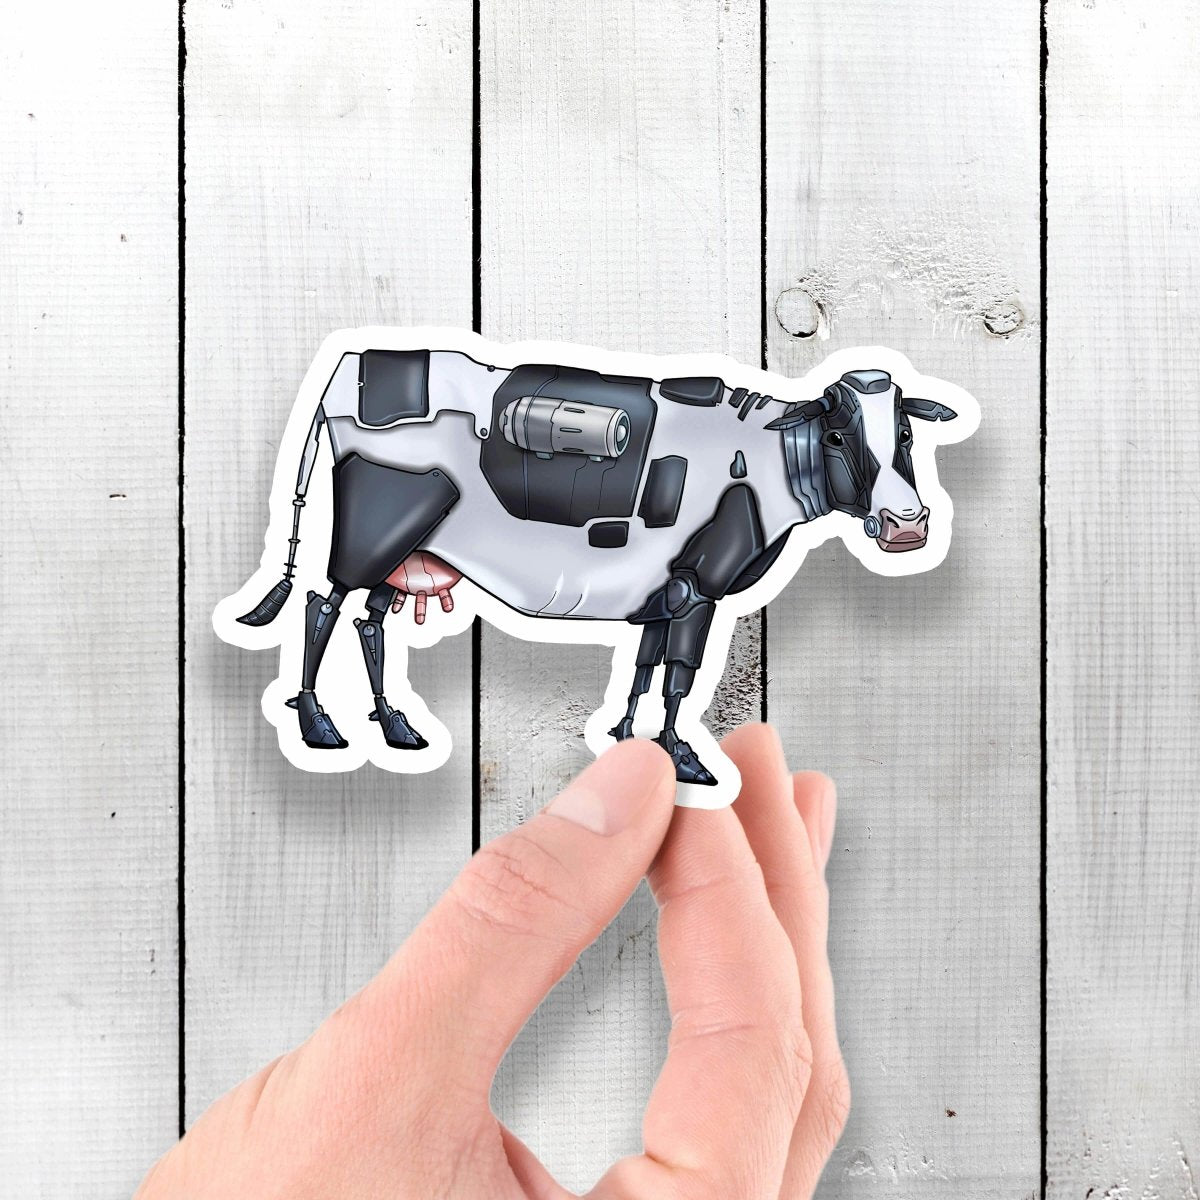 Holstein Cow Robot - Vinyl Sticker - Dan Pearce Sticker Shop